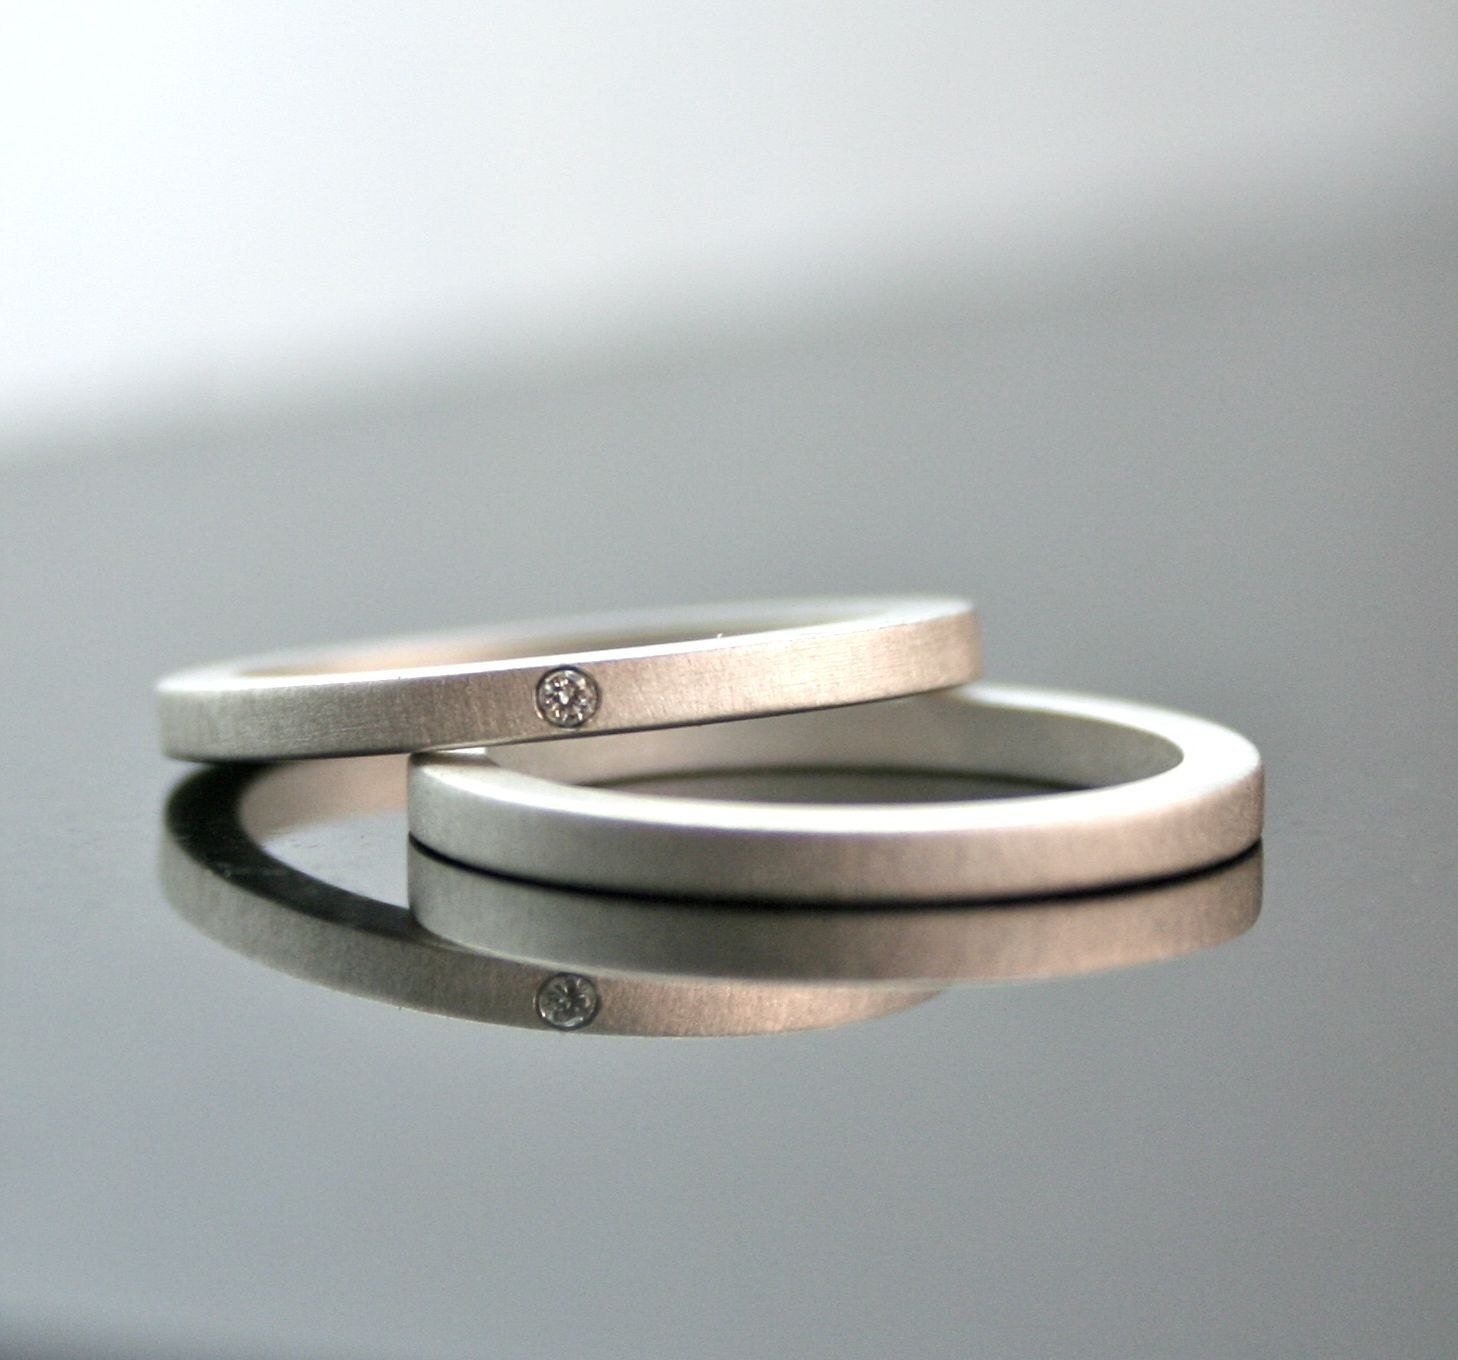 zoom - Wedding Band And Engagement Ring Set